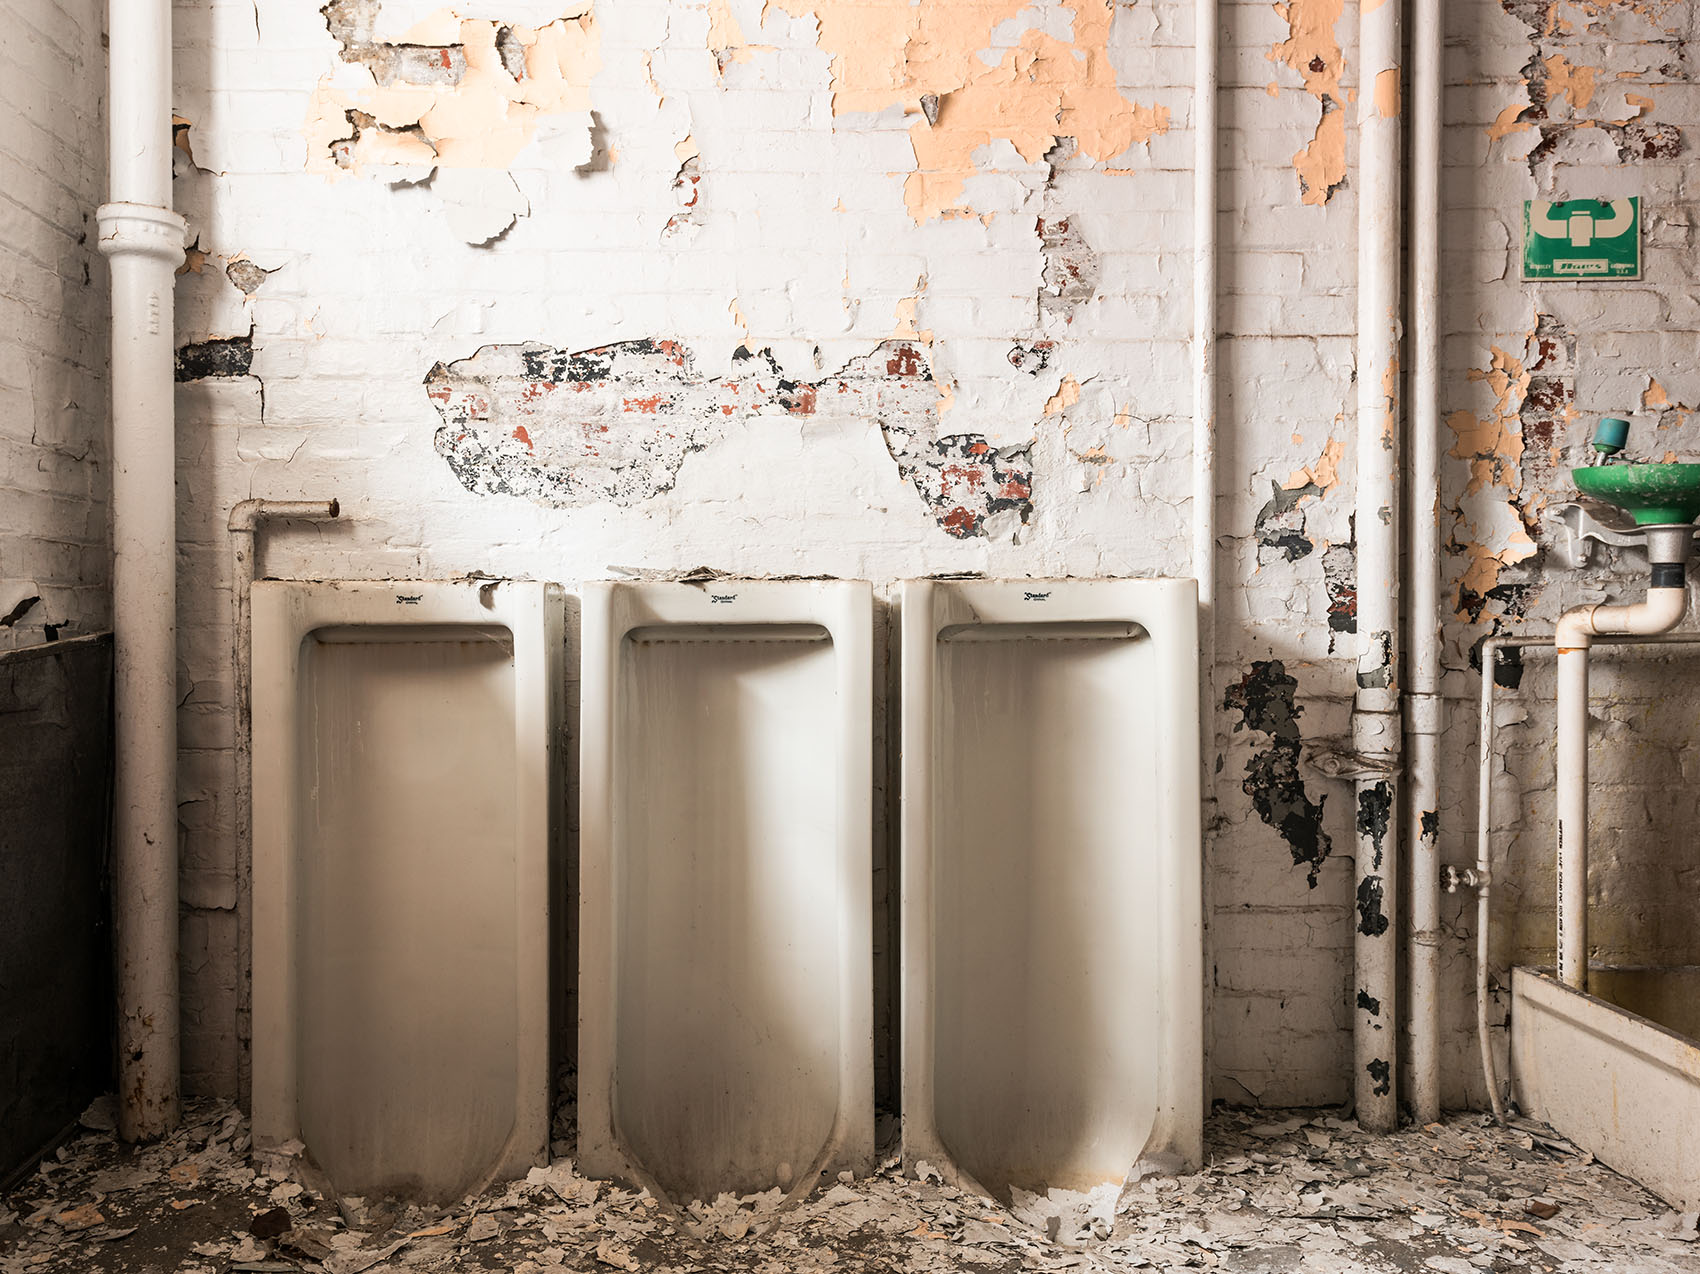 abandoned bathroom Silo City ghost town